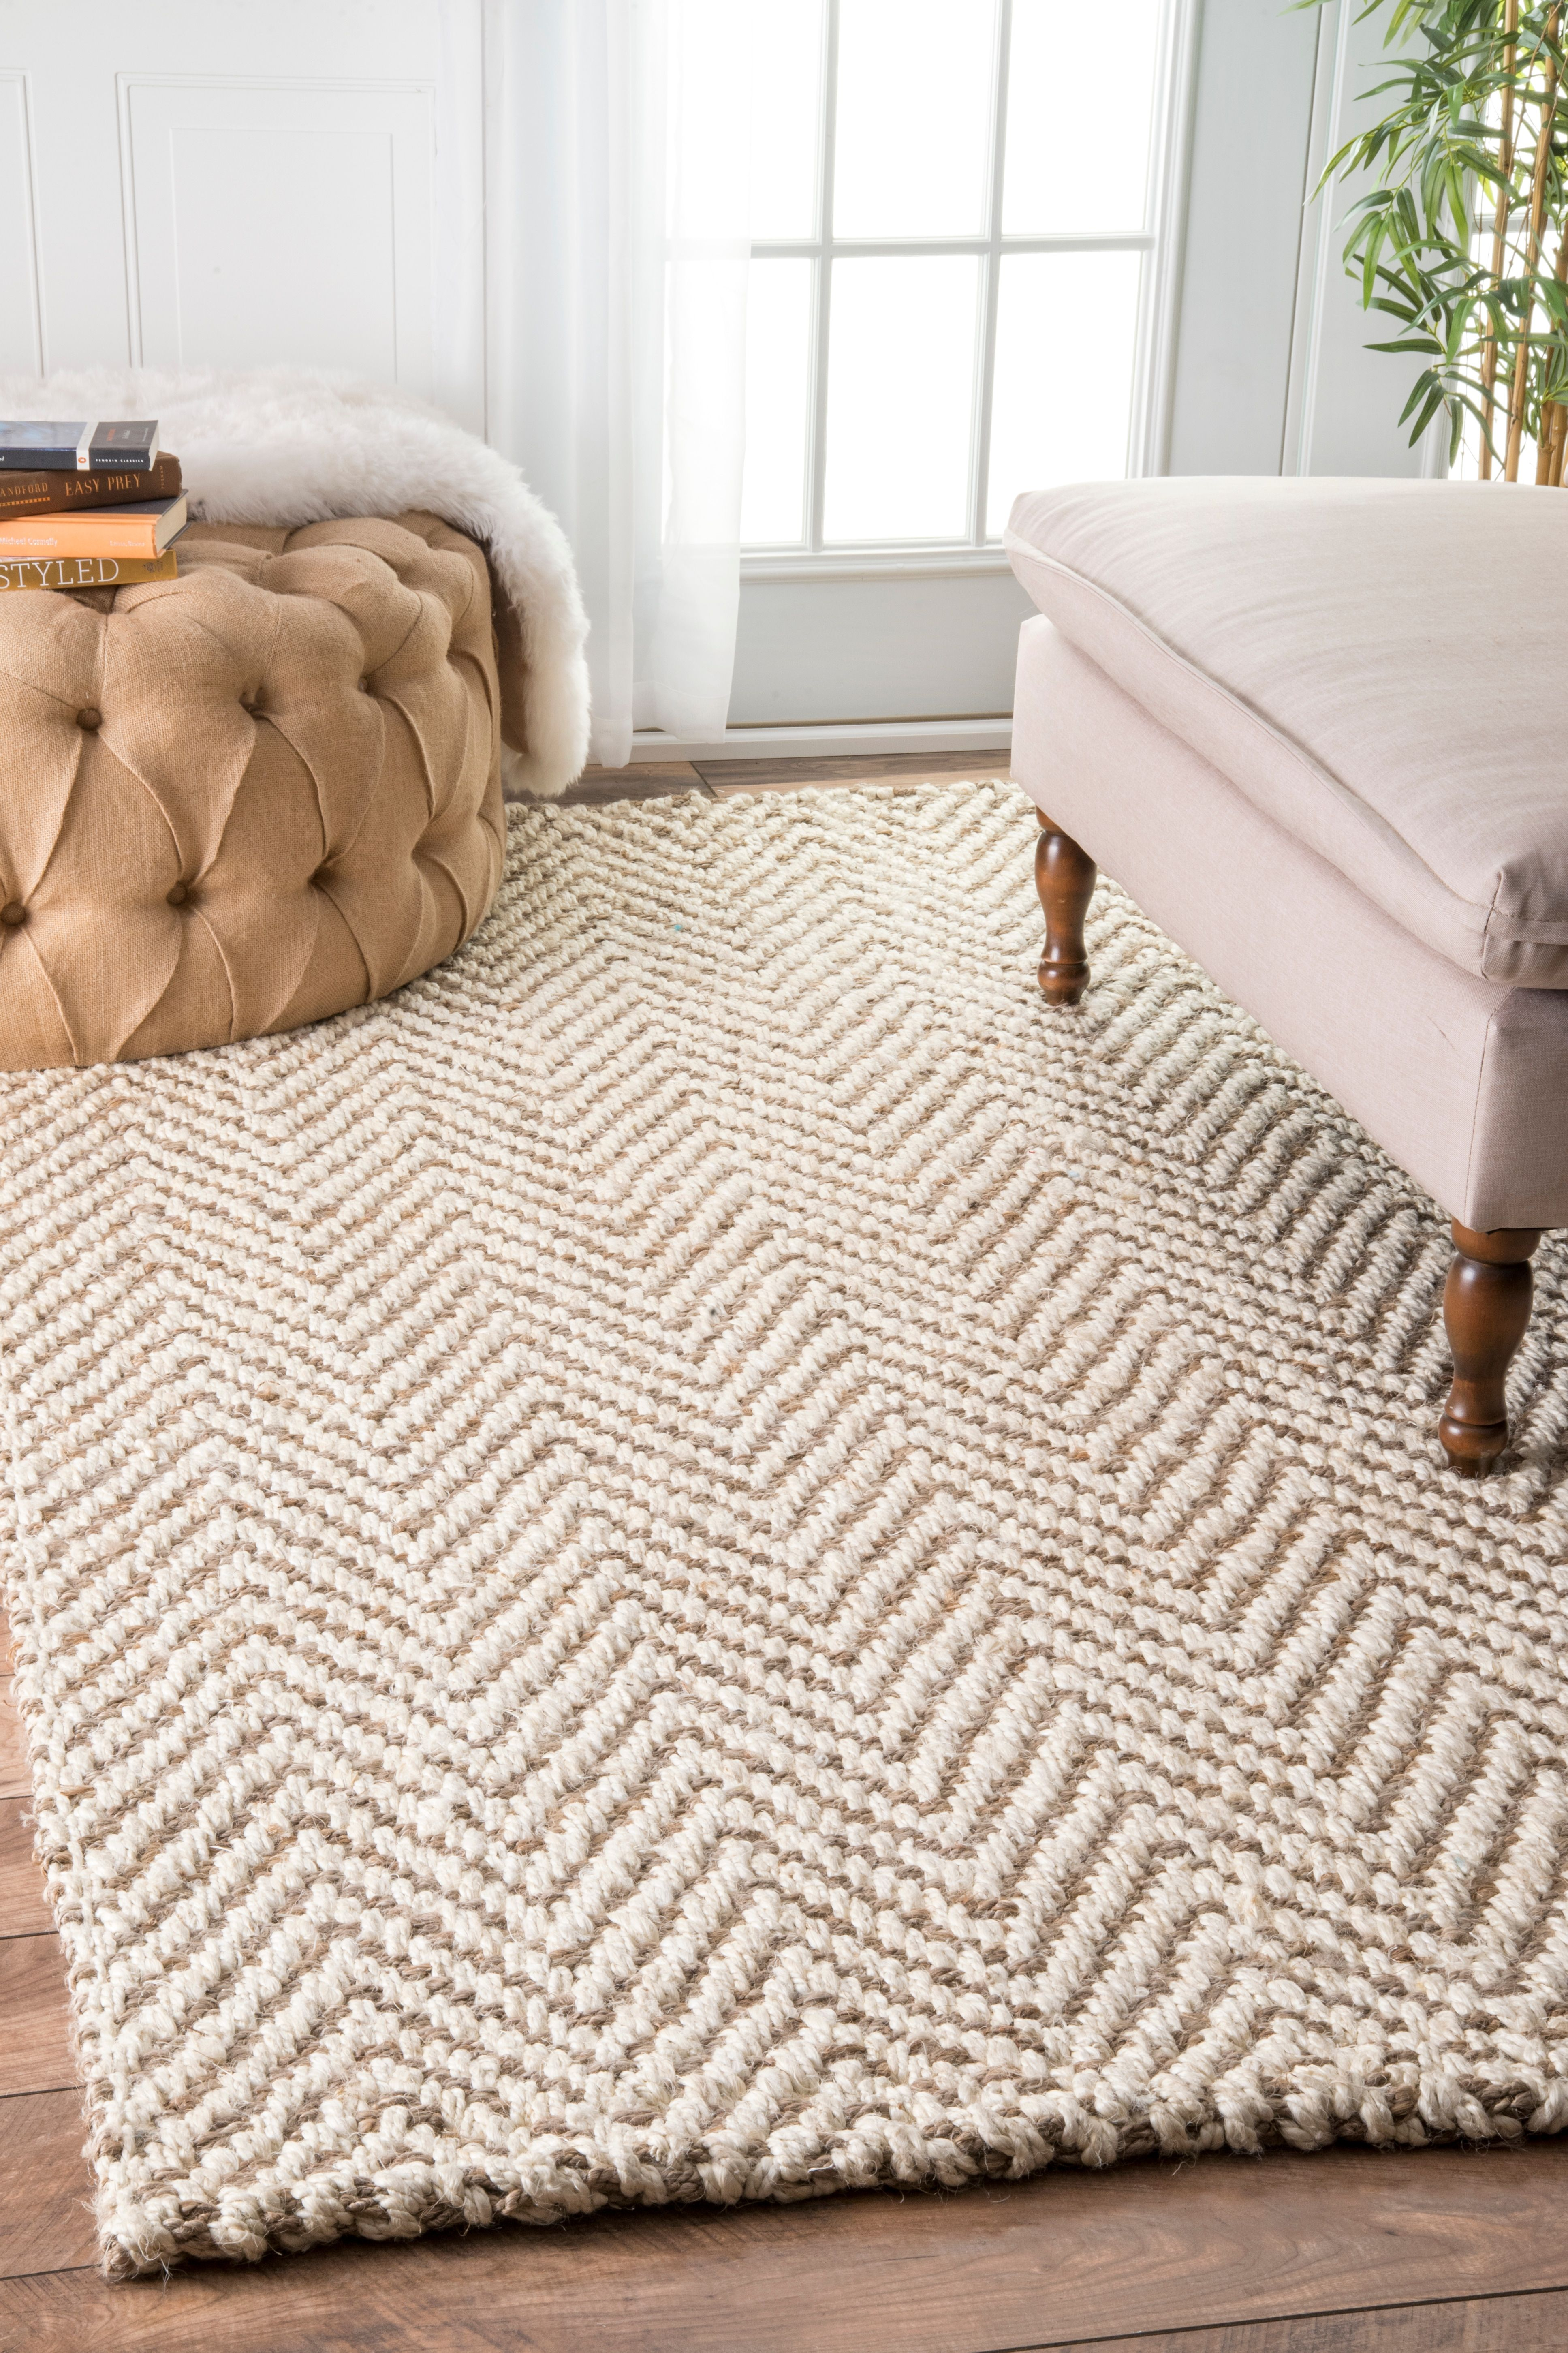 Get the earthy rustic look with amazingly striped patterned ...